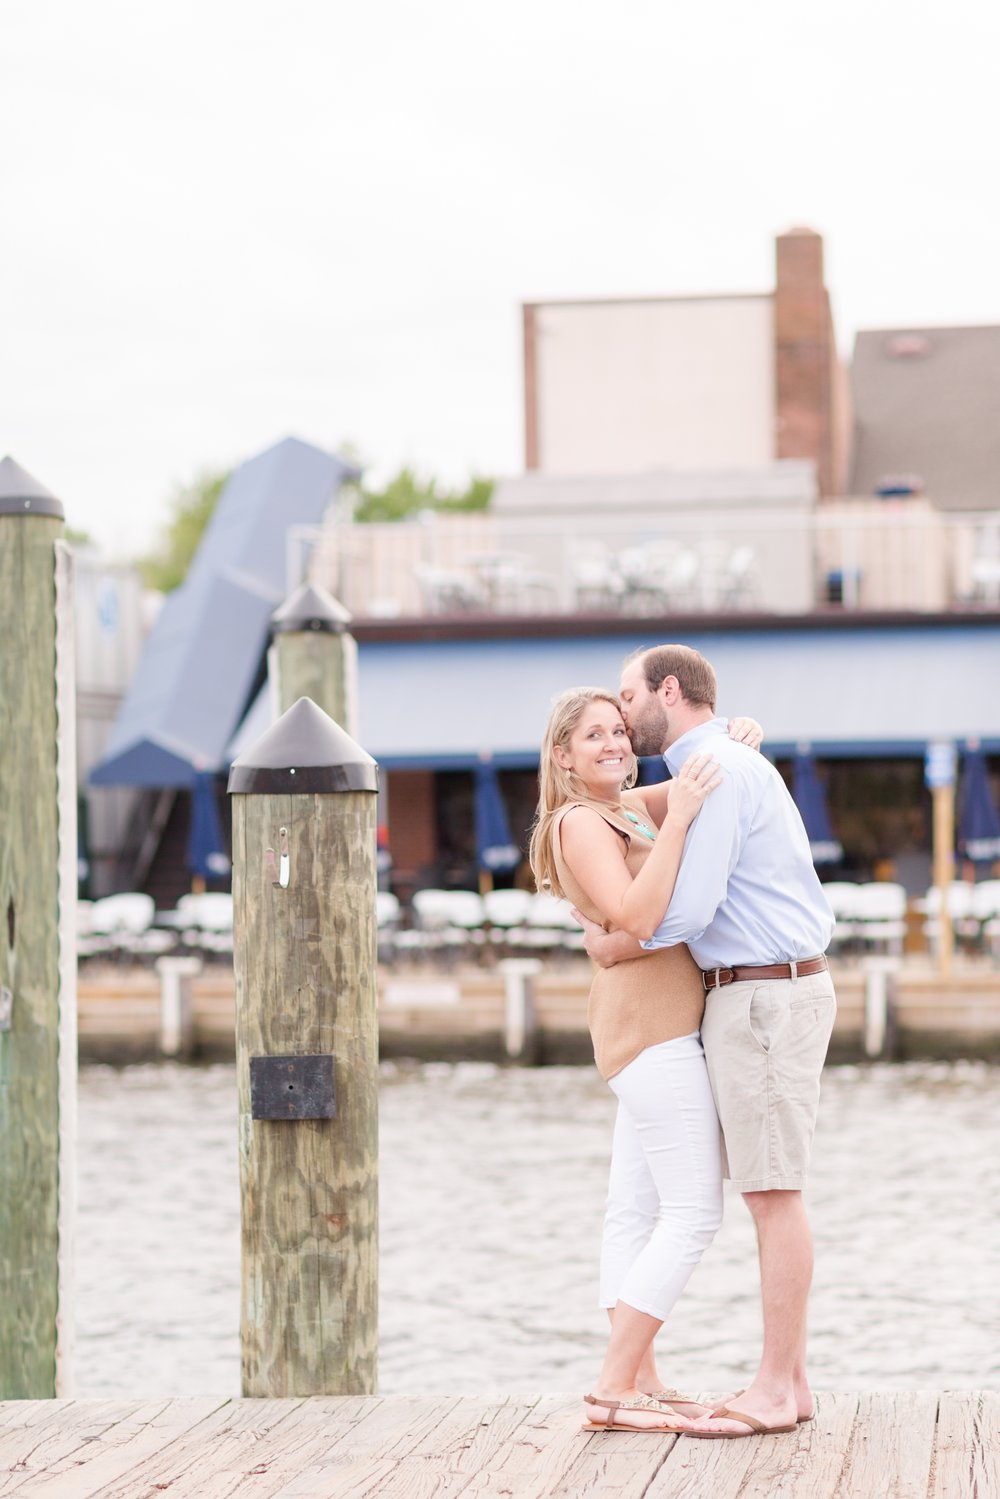 Alyson Shields & Rob Lang Engagement-213_anna grace photography downtown annapolis engagement maryland wedding and engagement photographer photo.jpg